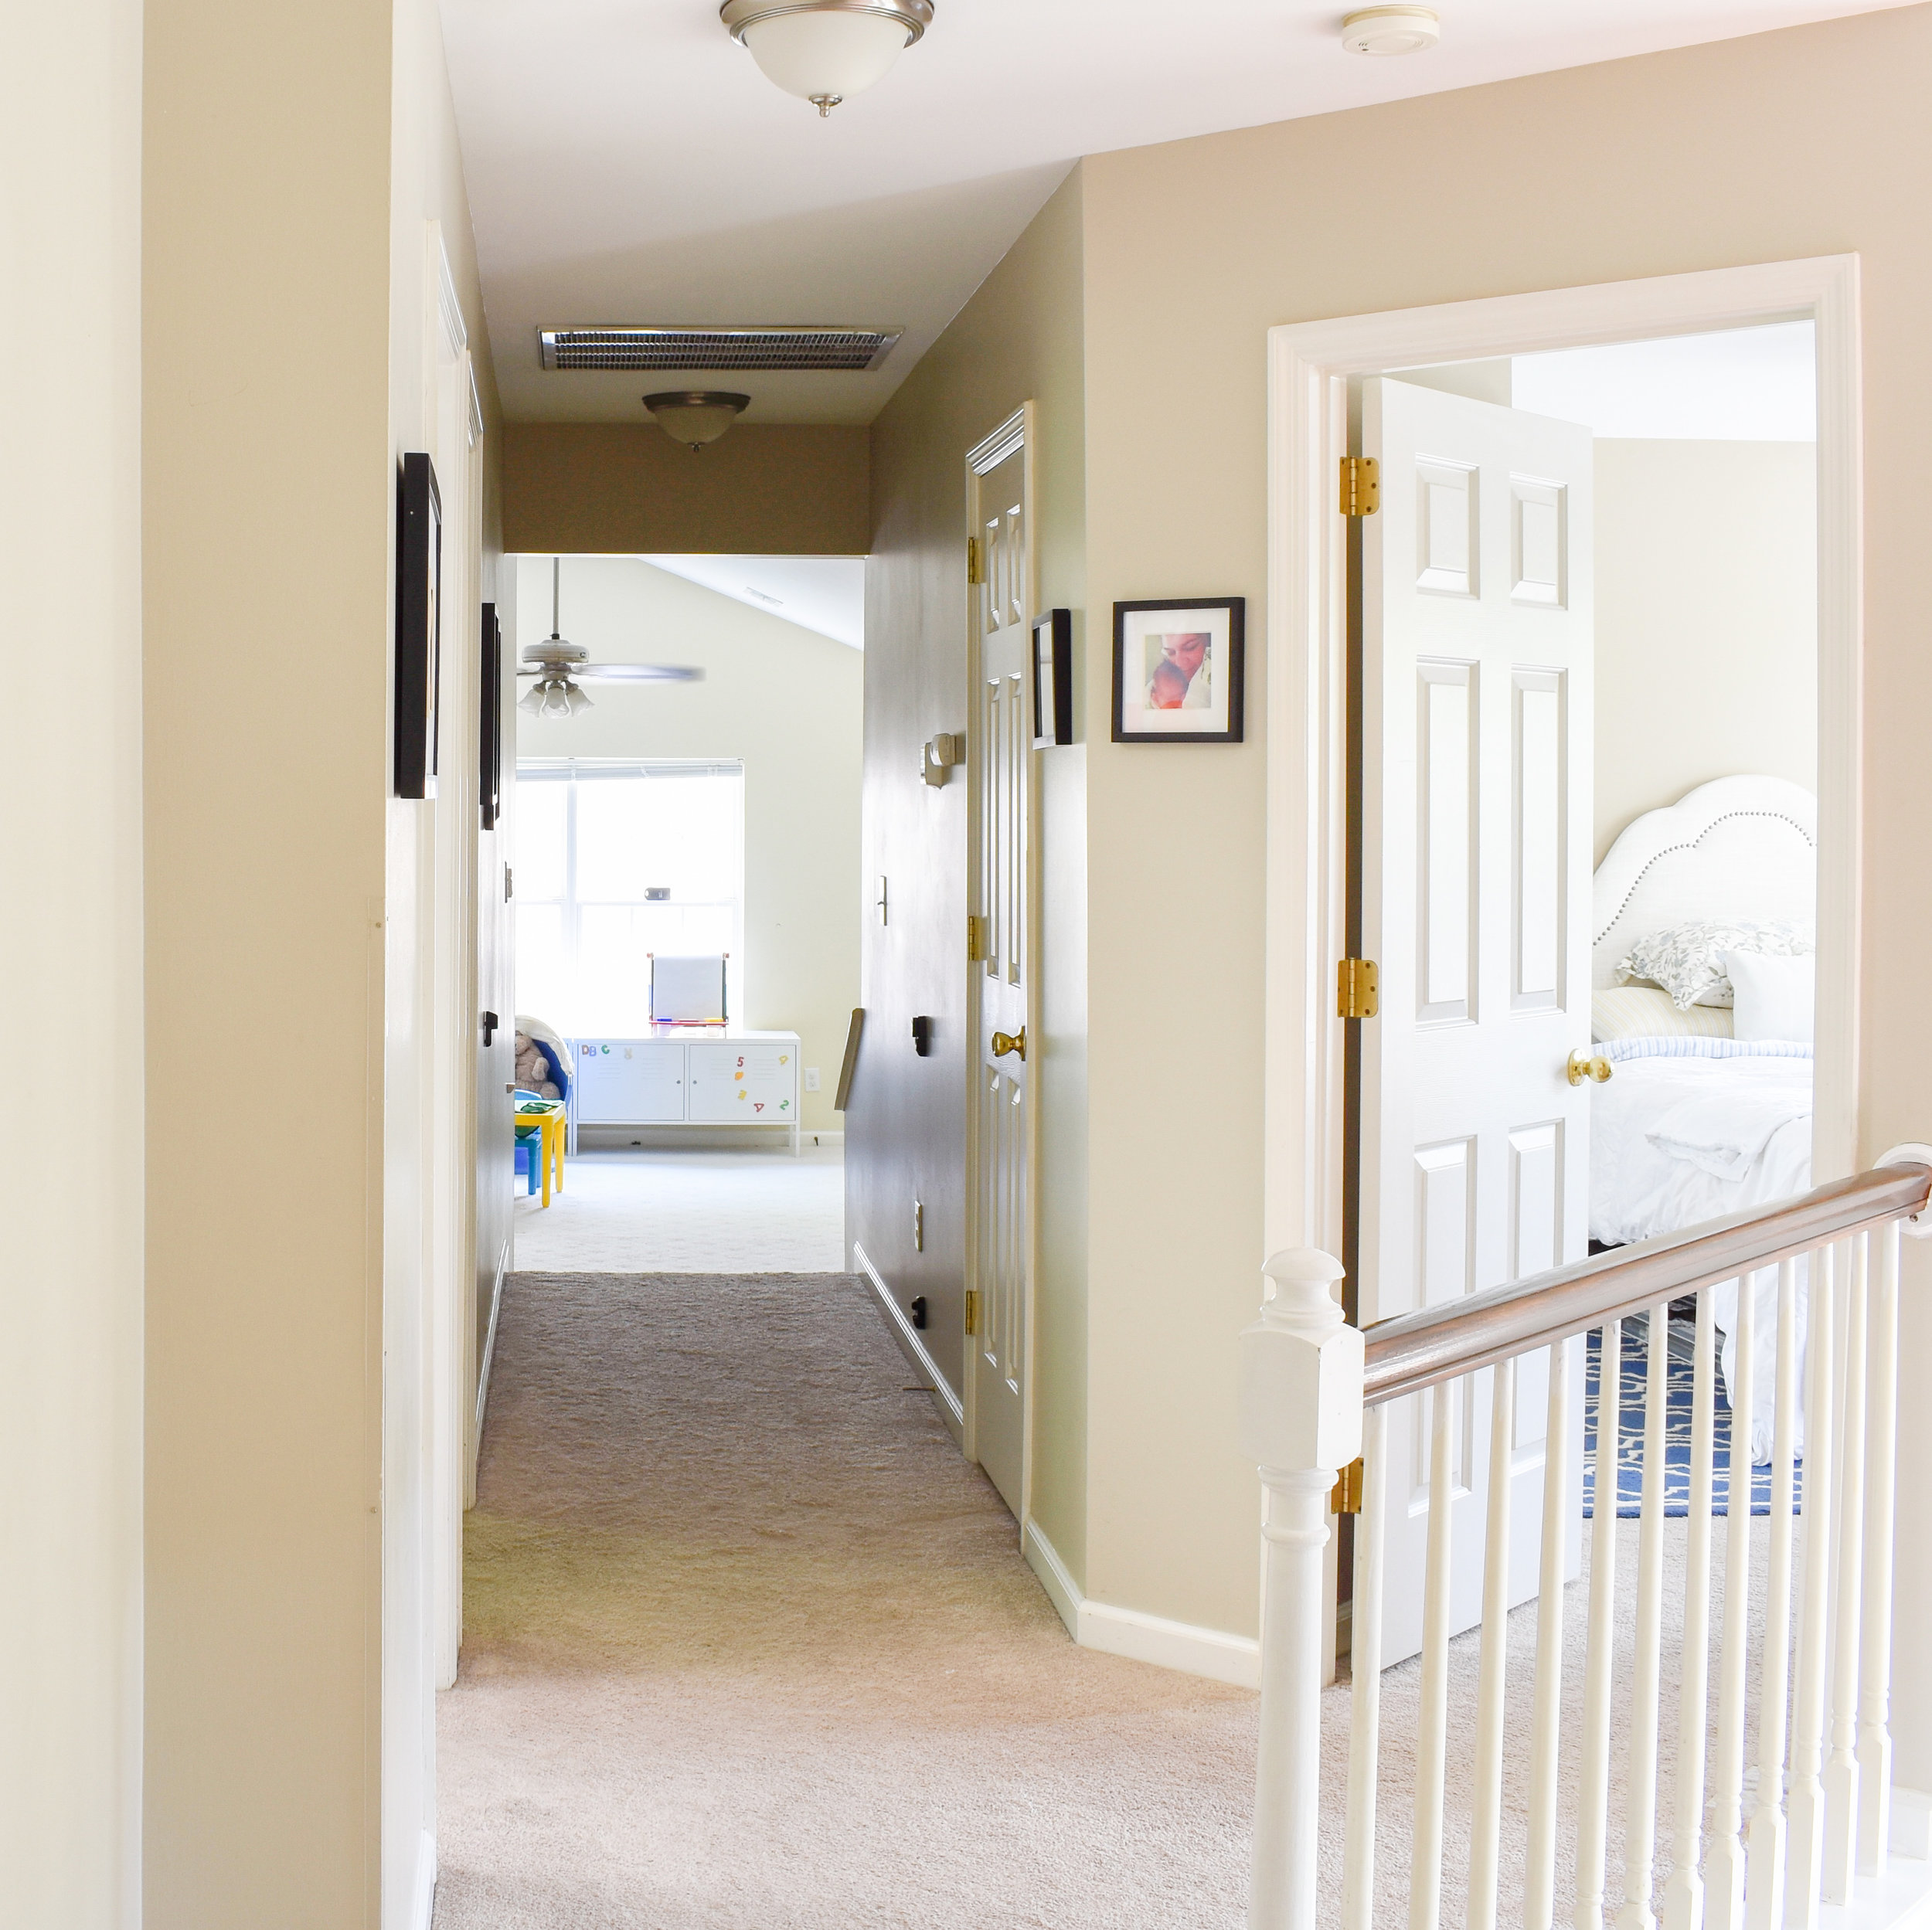 Our Decision To Downsize - How and Why We Decided A Smaller Home Was Better For Our Family #familyhome #homebudgeting #downsizing